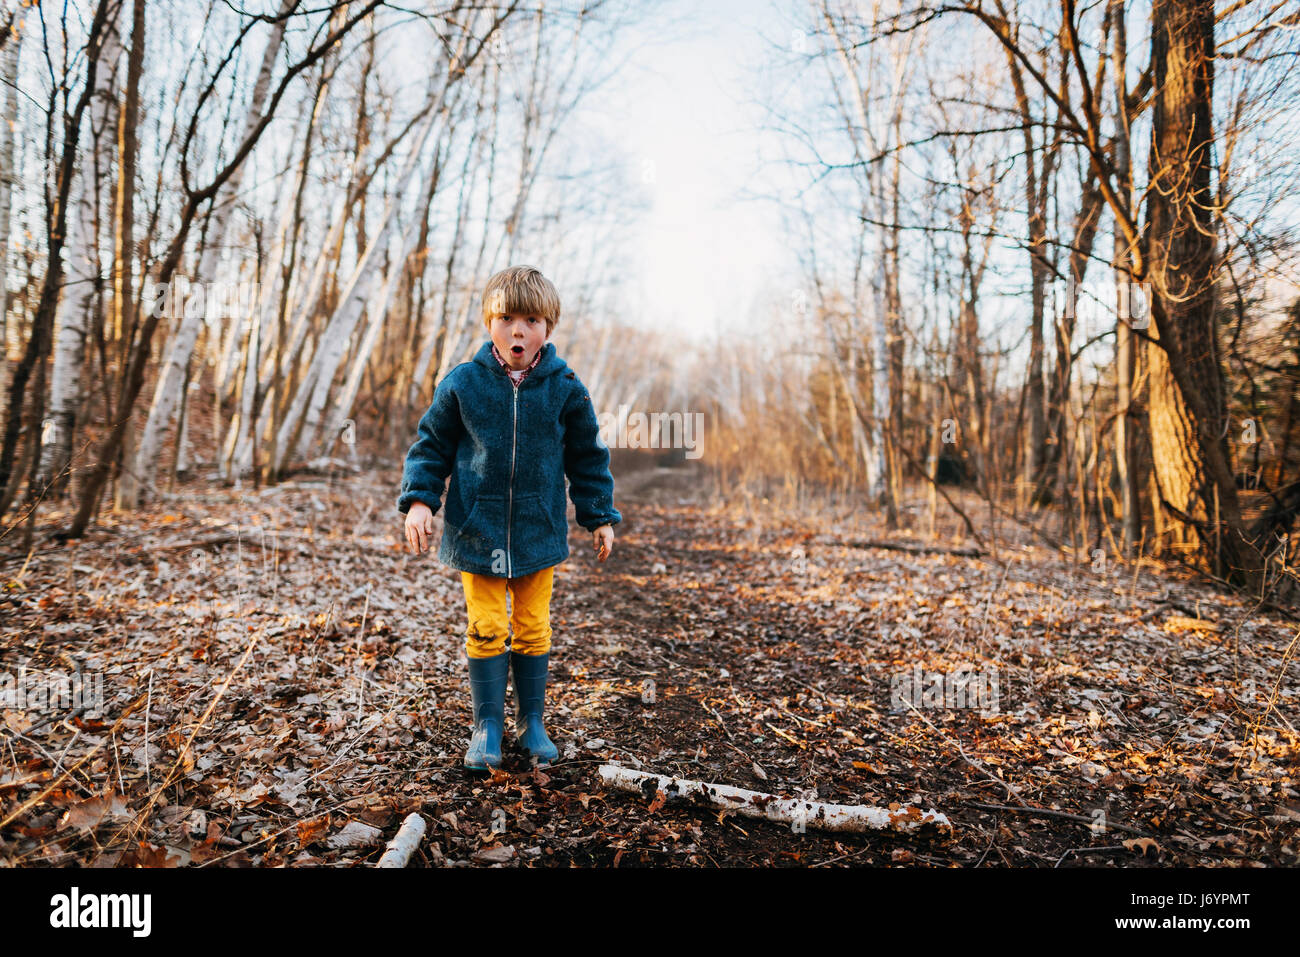 Boy standing in forest pulling funny faces - Stock Image